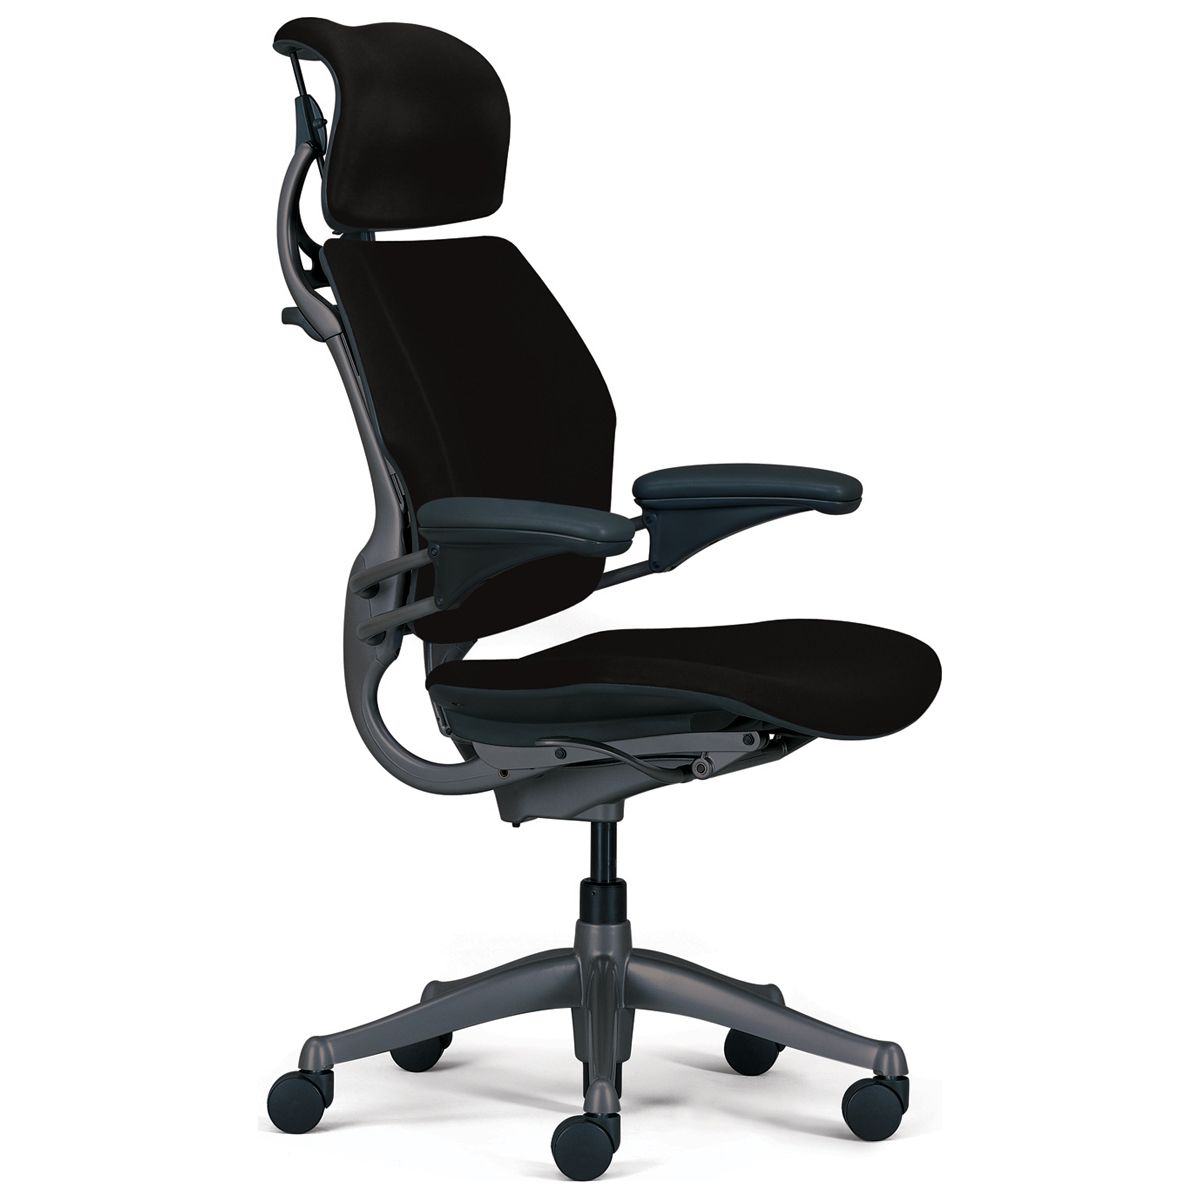 Humanscale chairs featuring the freedom and liberty chairs